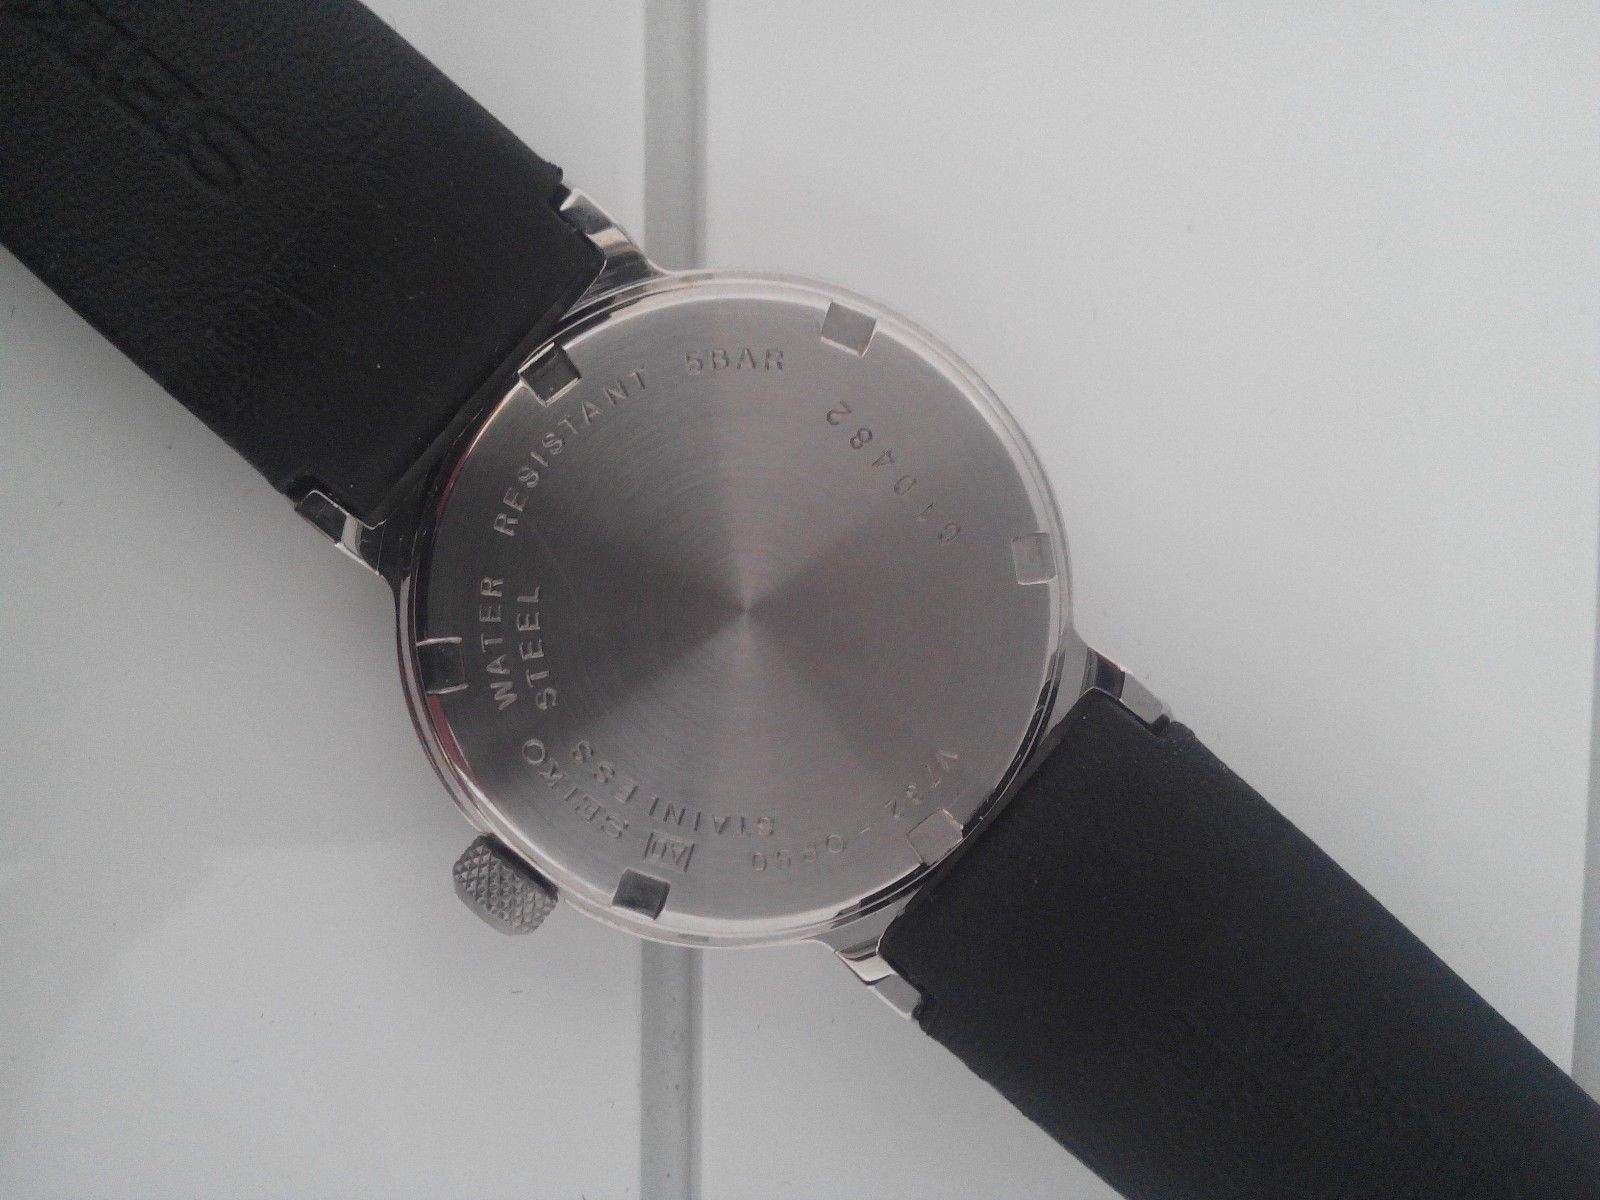 Seiko watch SKG889P1, black dial, casual, red second hand